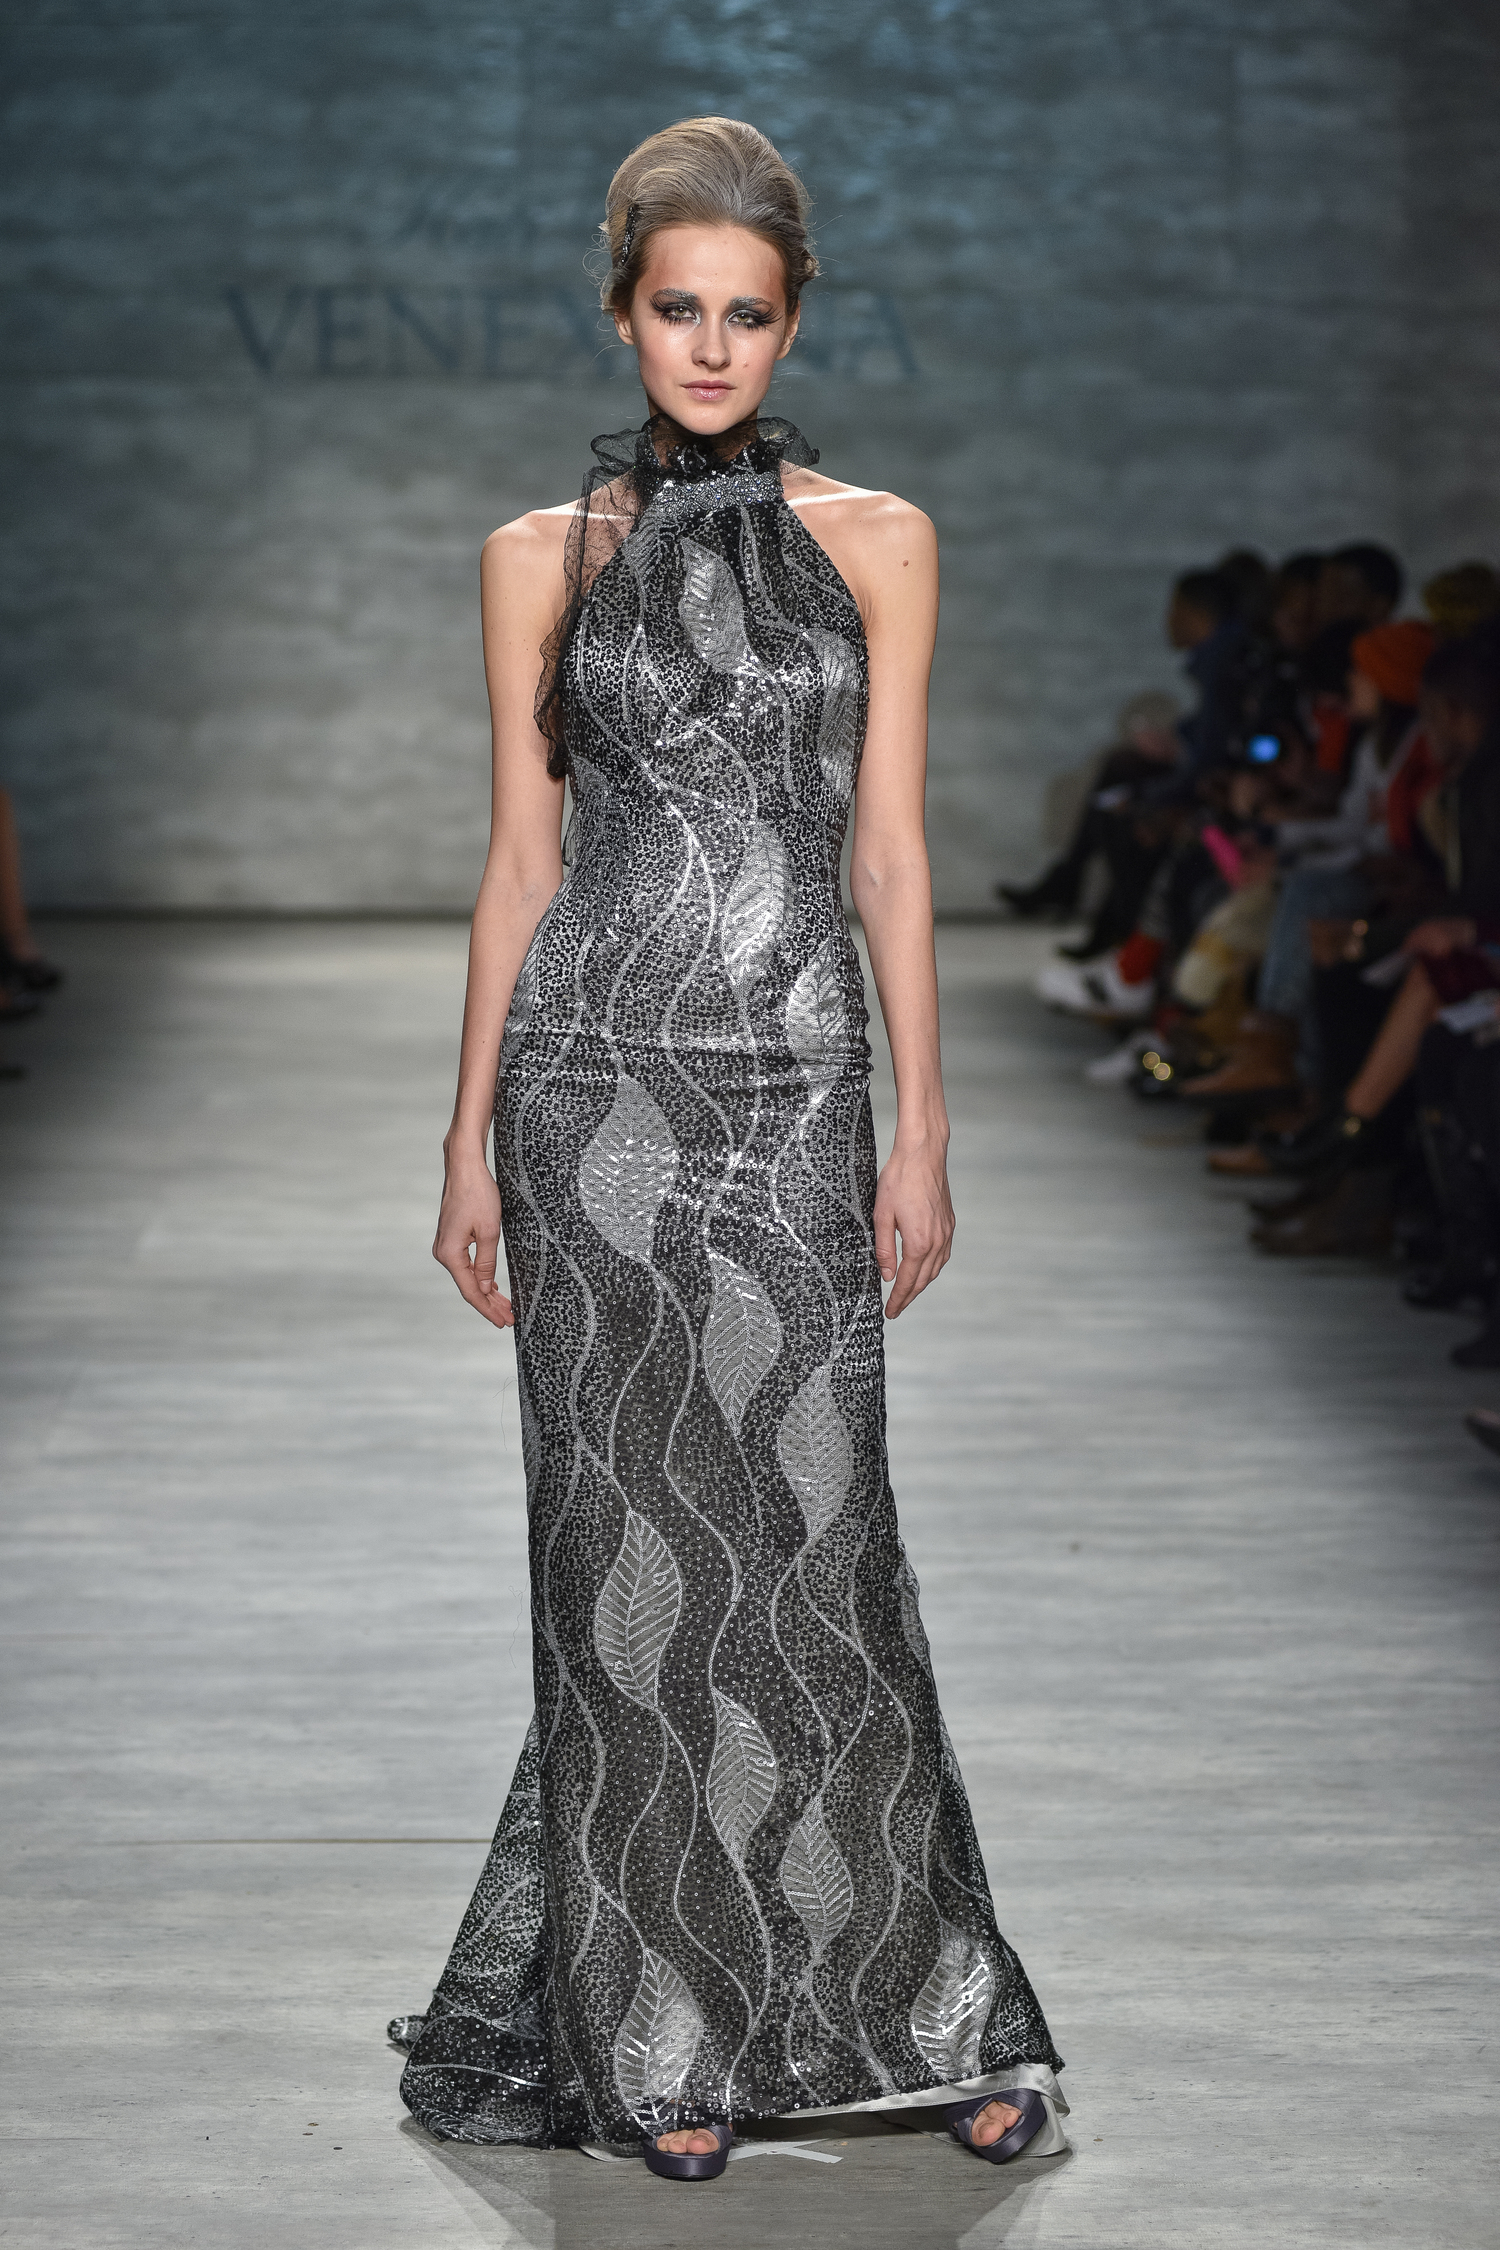 Black and Silver Sequin Gown with Crystal Detail — Globa Moda